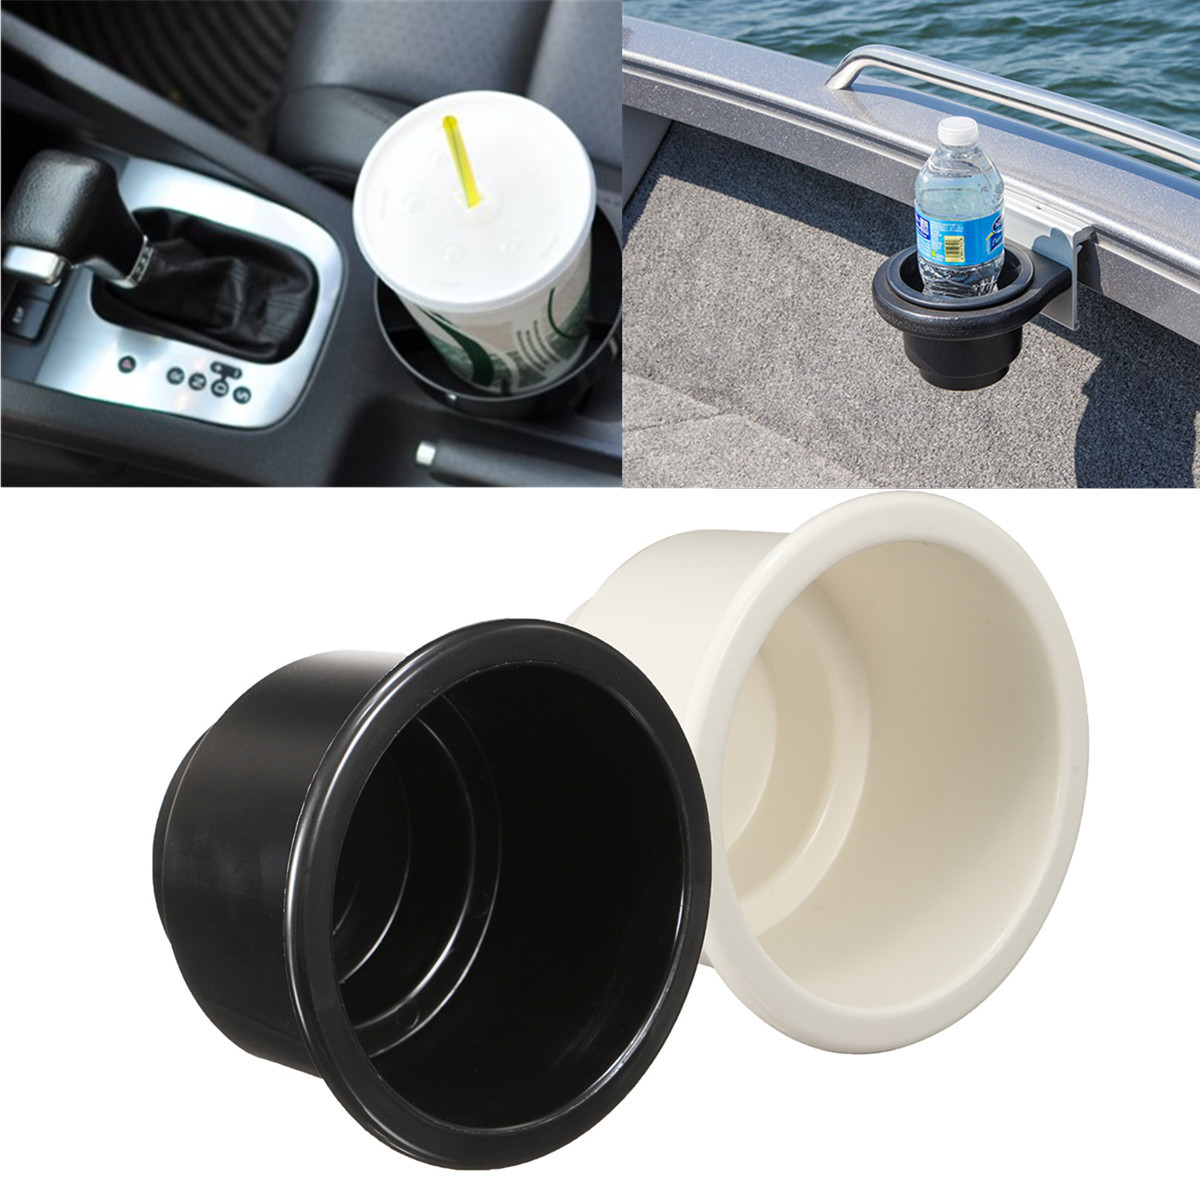 Plastic Marine Boat RV Car Cup Drink Can Water Bottle Holder with Water Drain